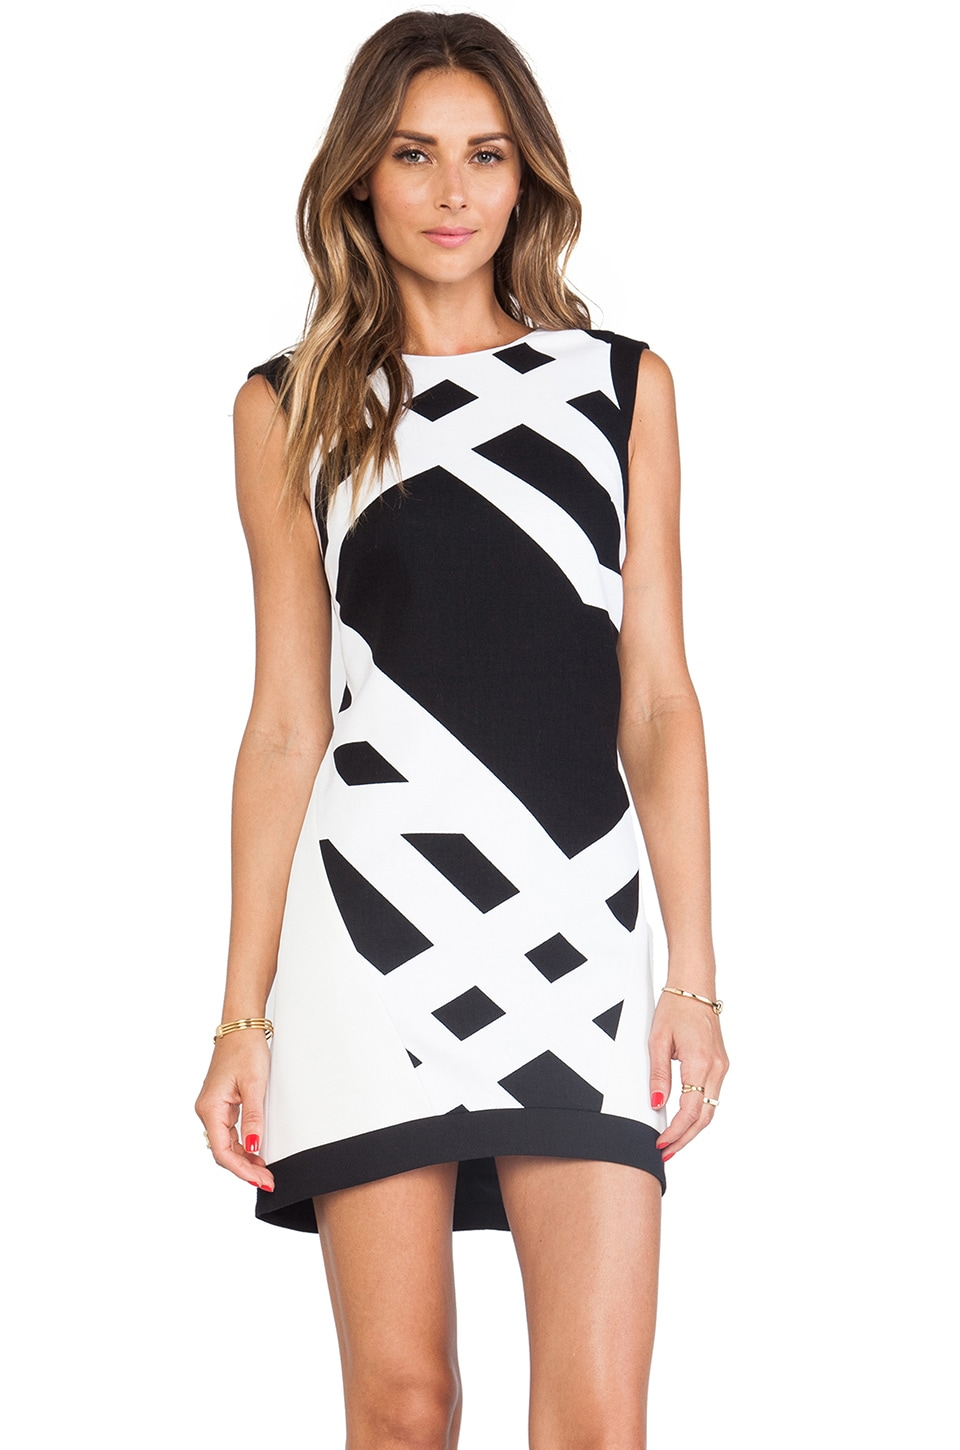 Tibi Cotton and Neoprene Sleeveless Dress in Black/White Multi